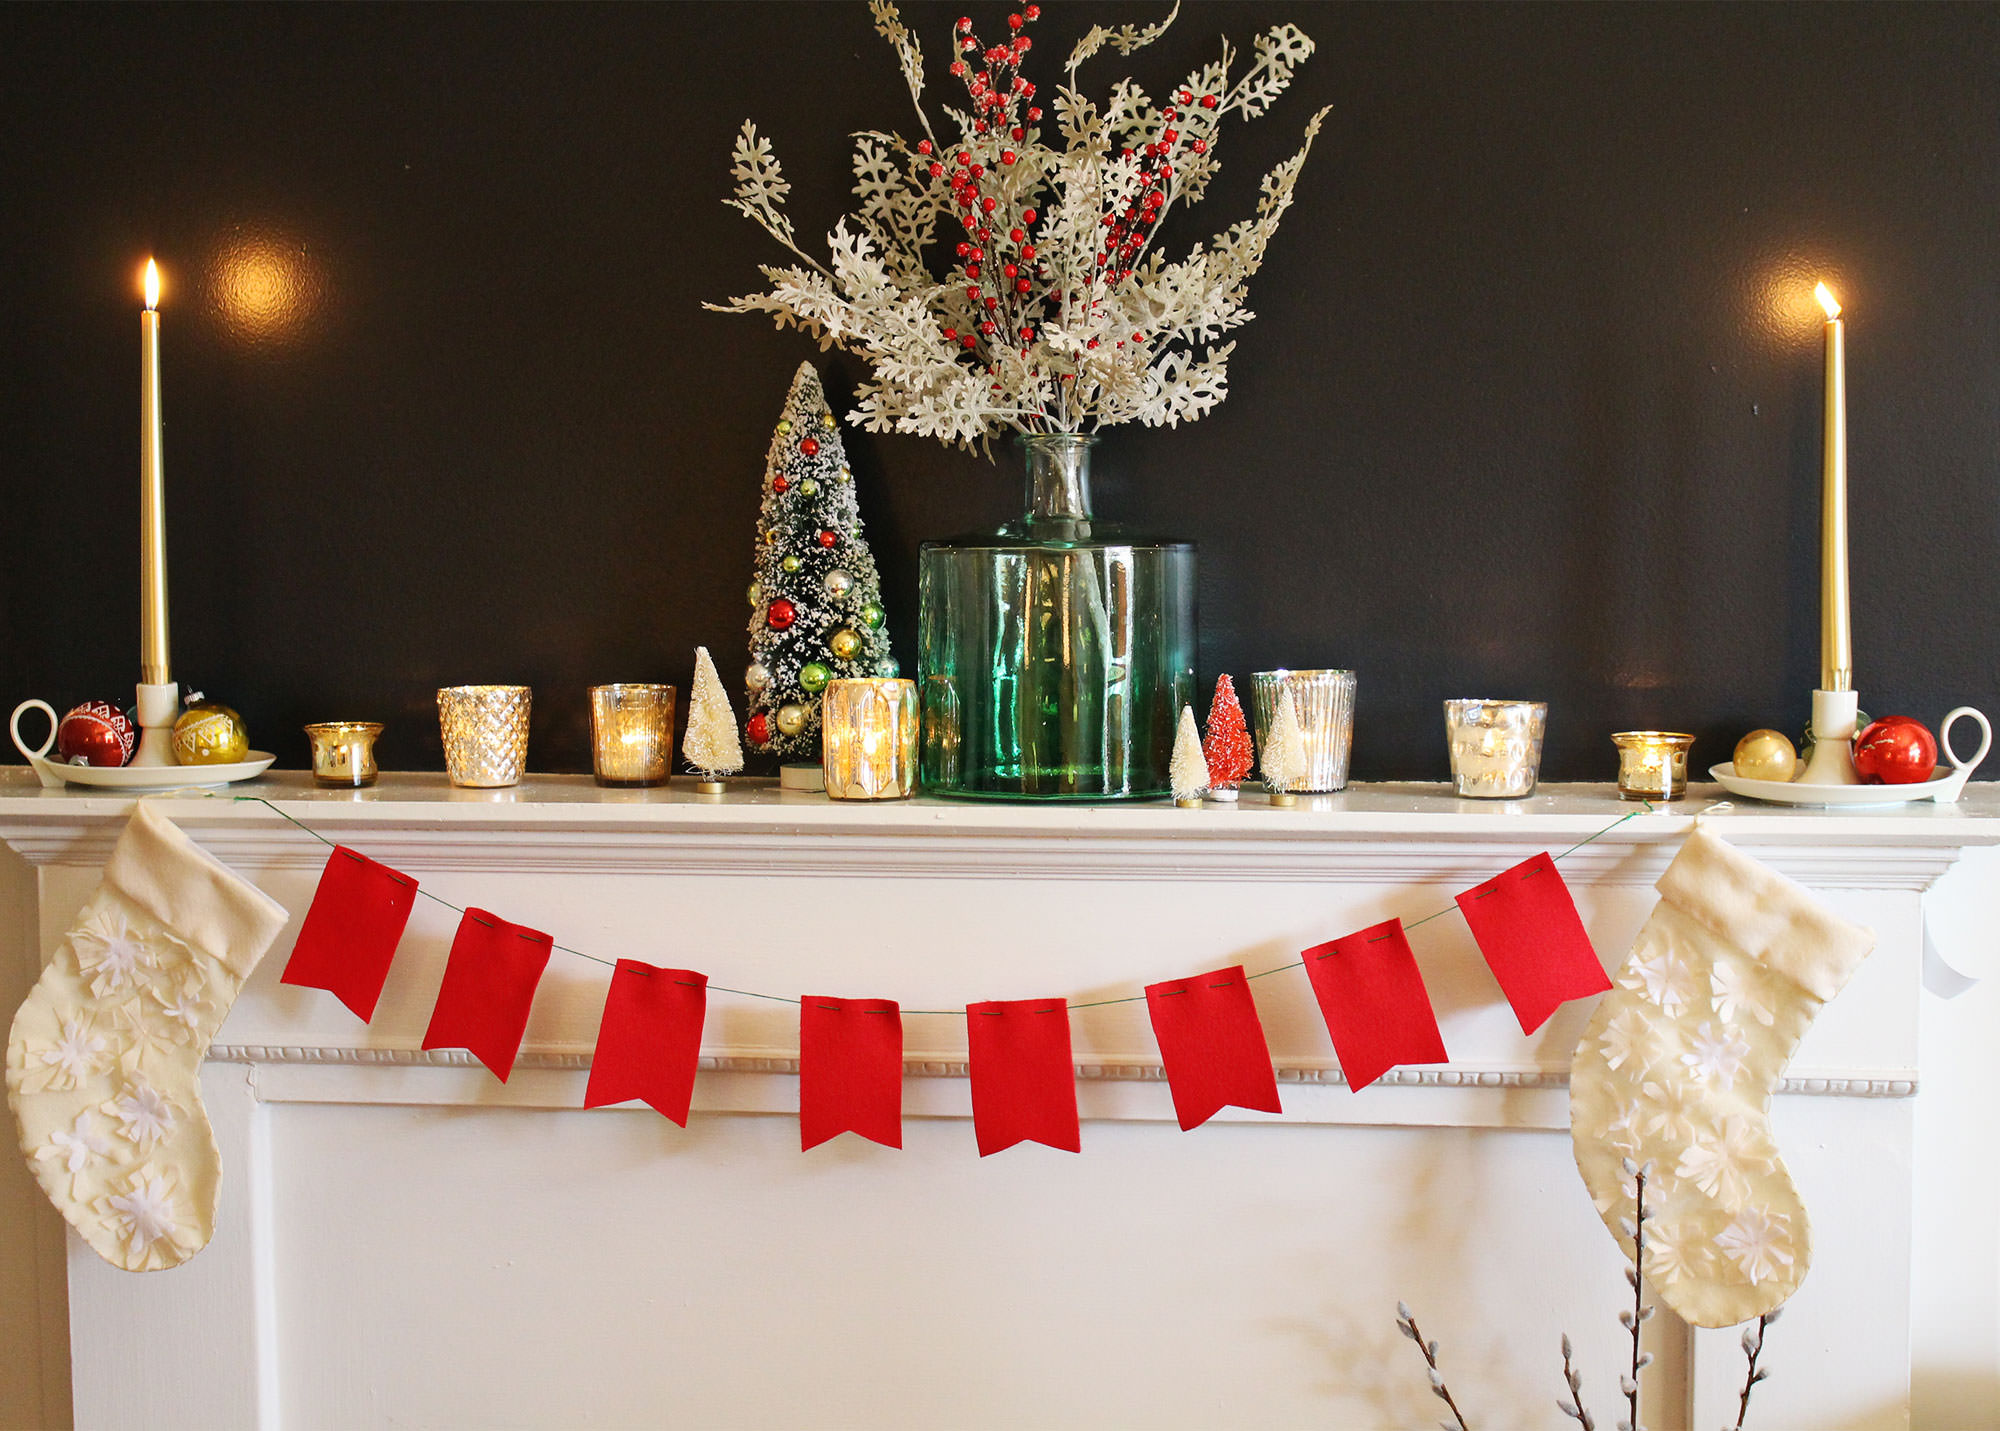 Holiday Mantel decorating inspiration from The Virginia Lynn Co.